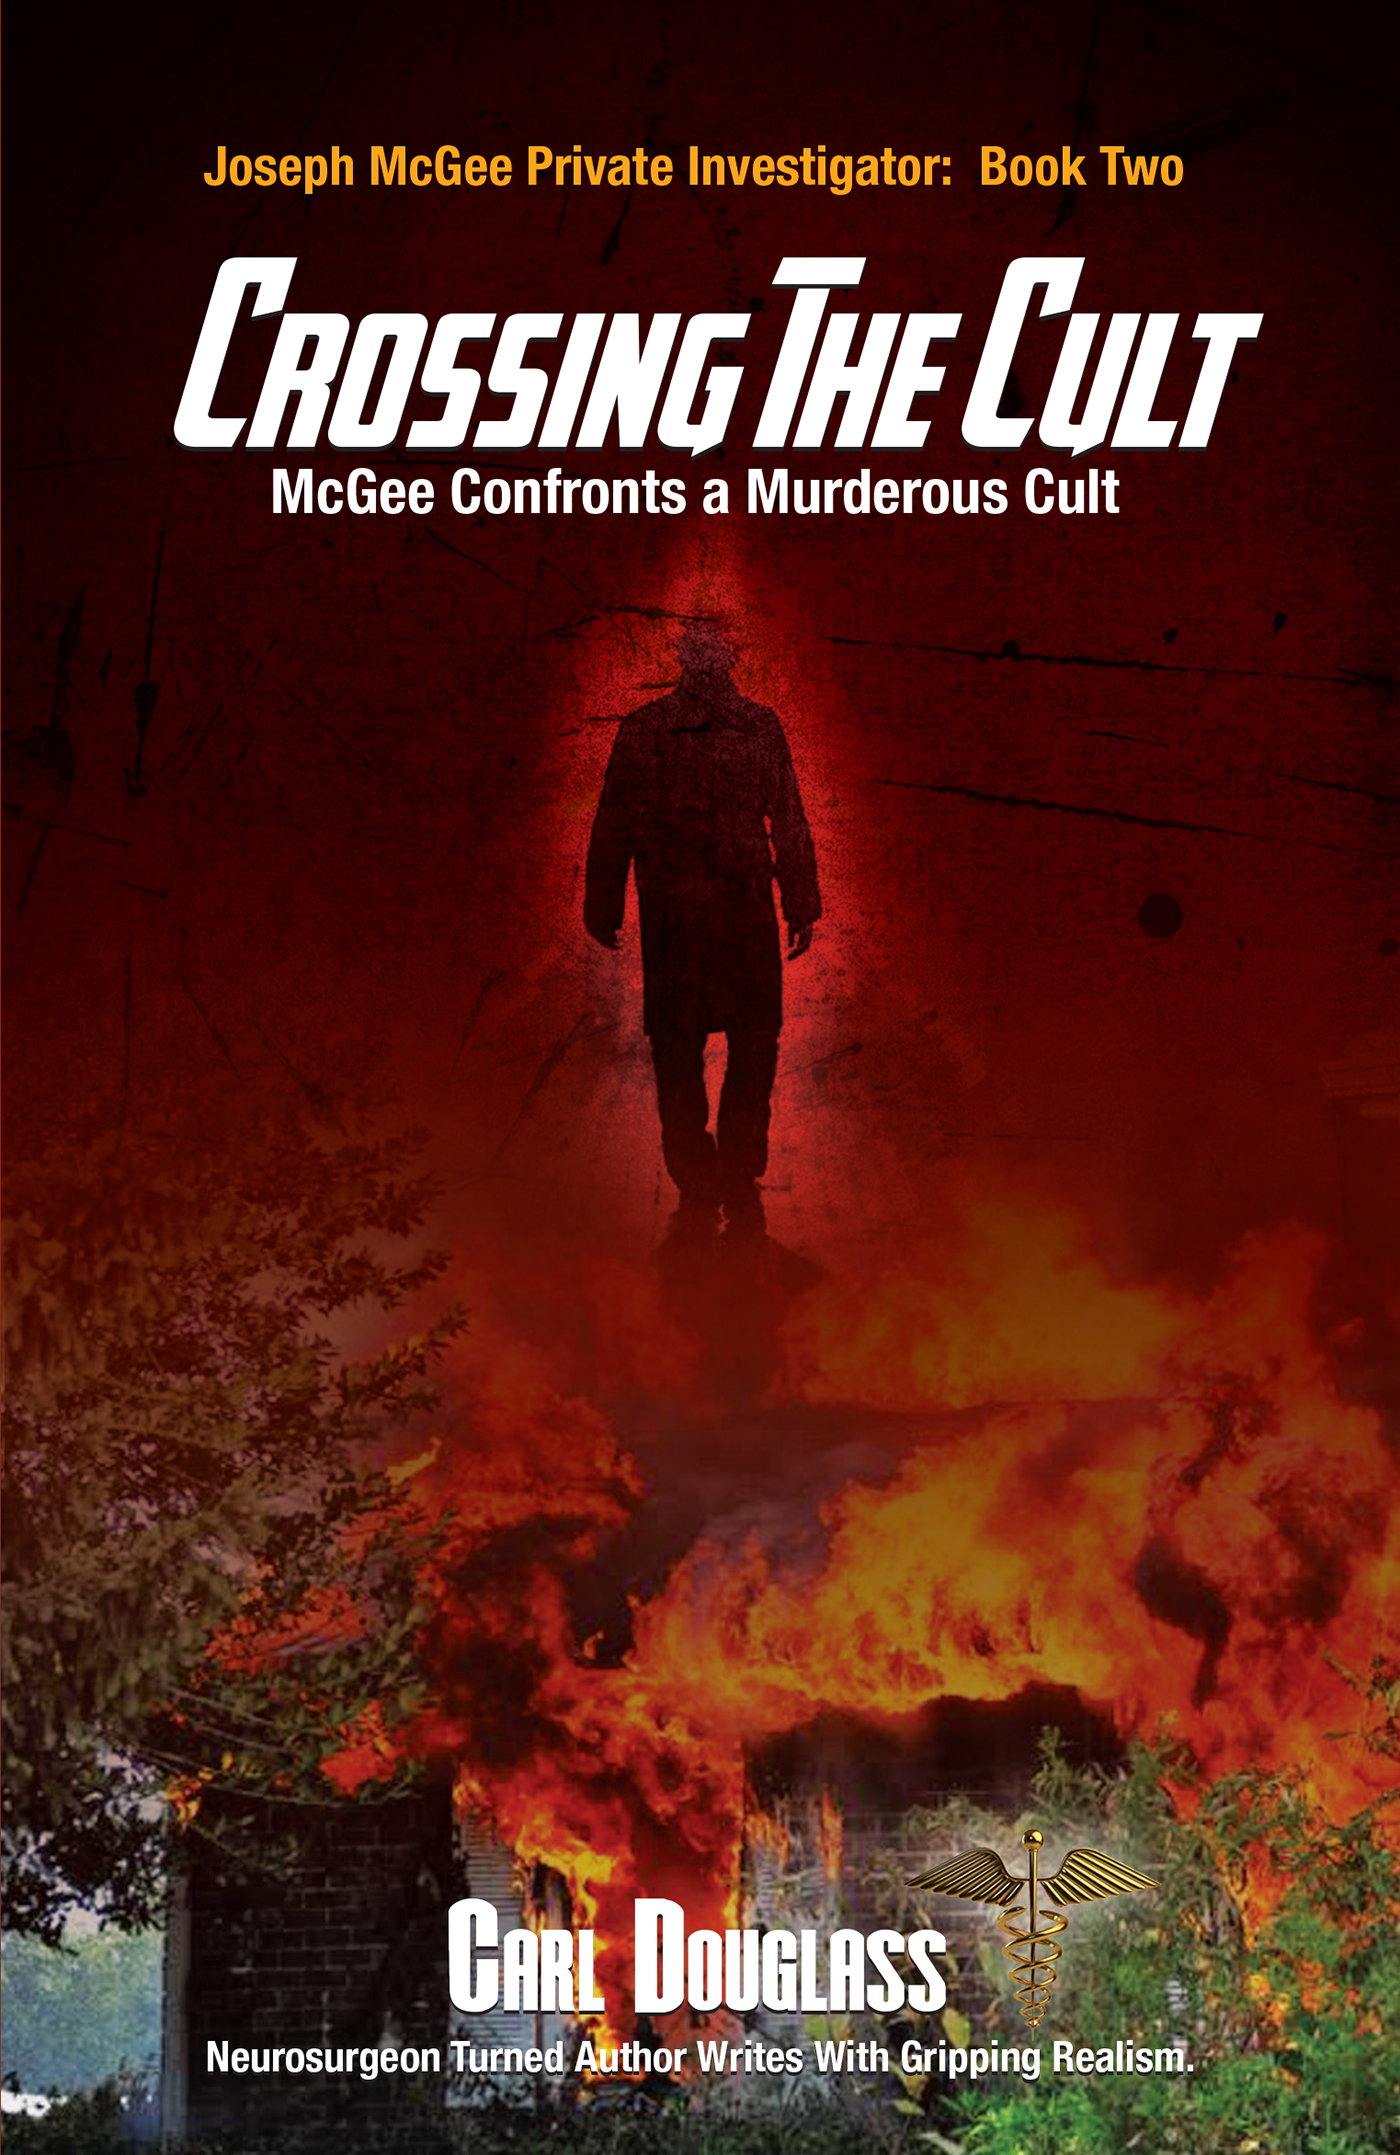 Crossing The Cult: McGee Confronts a Murderous Cult